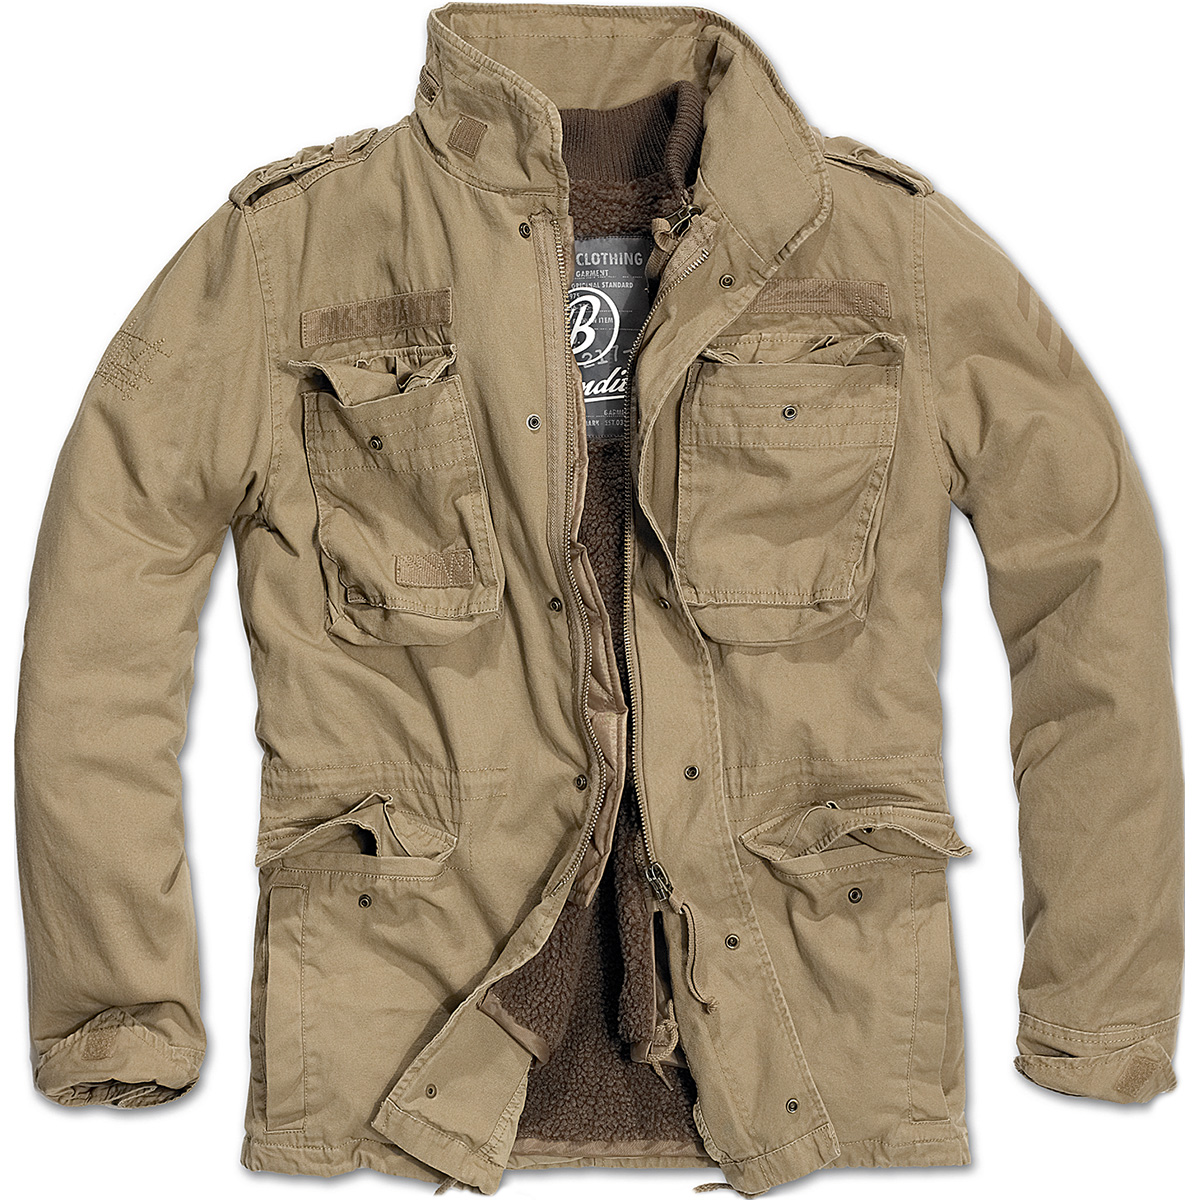 b5511074a2df Sentinel BRANDIT M65 GIANT MILITARY FIELD JACKET WARM MENS LINER VINTAGE  ARMY COAT CAMEL